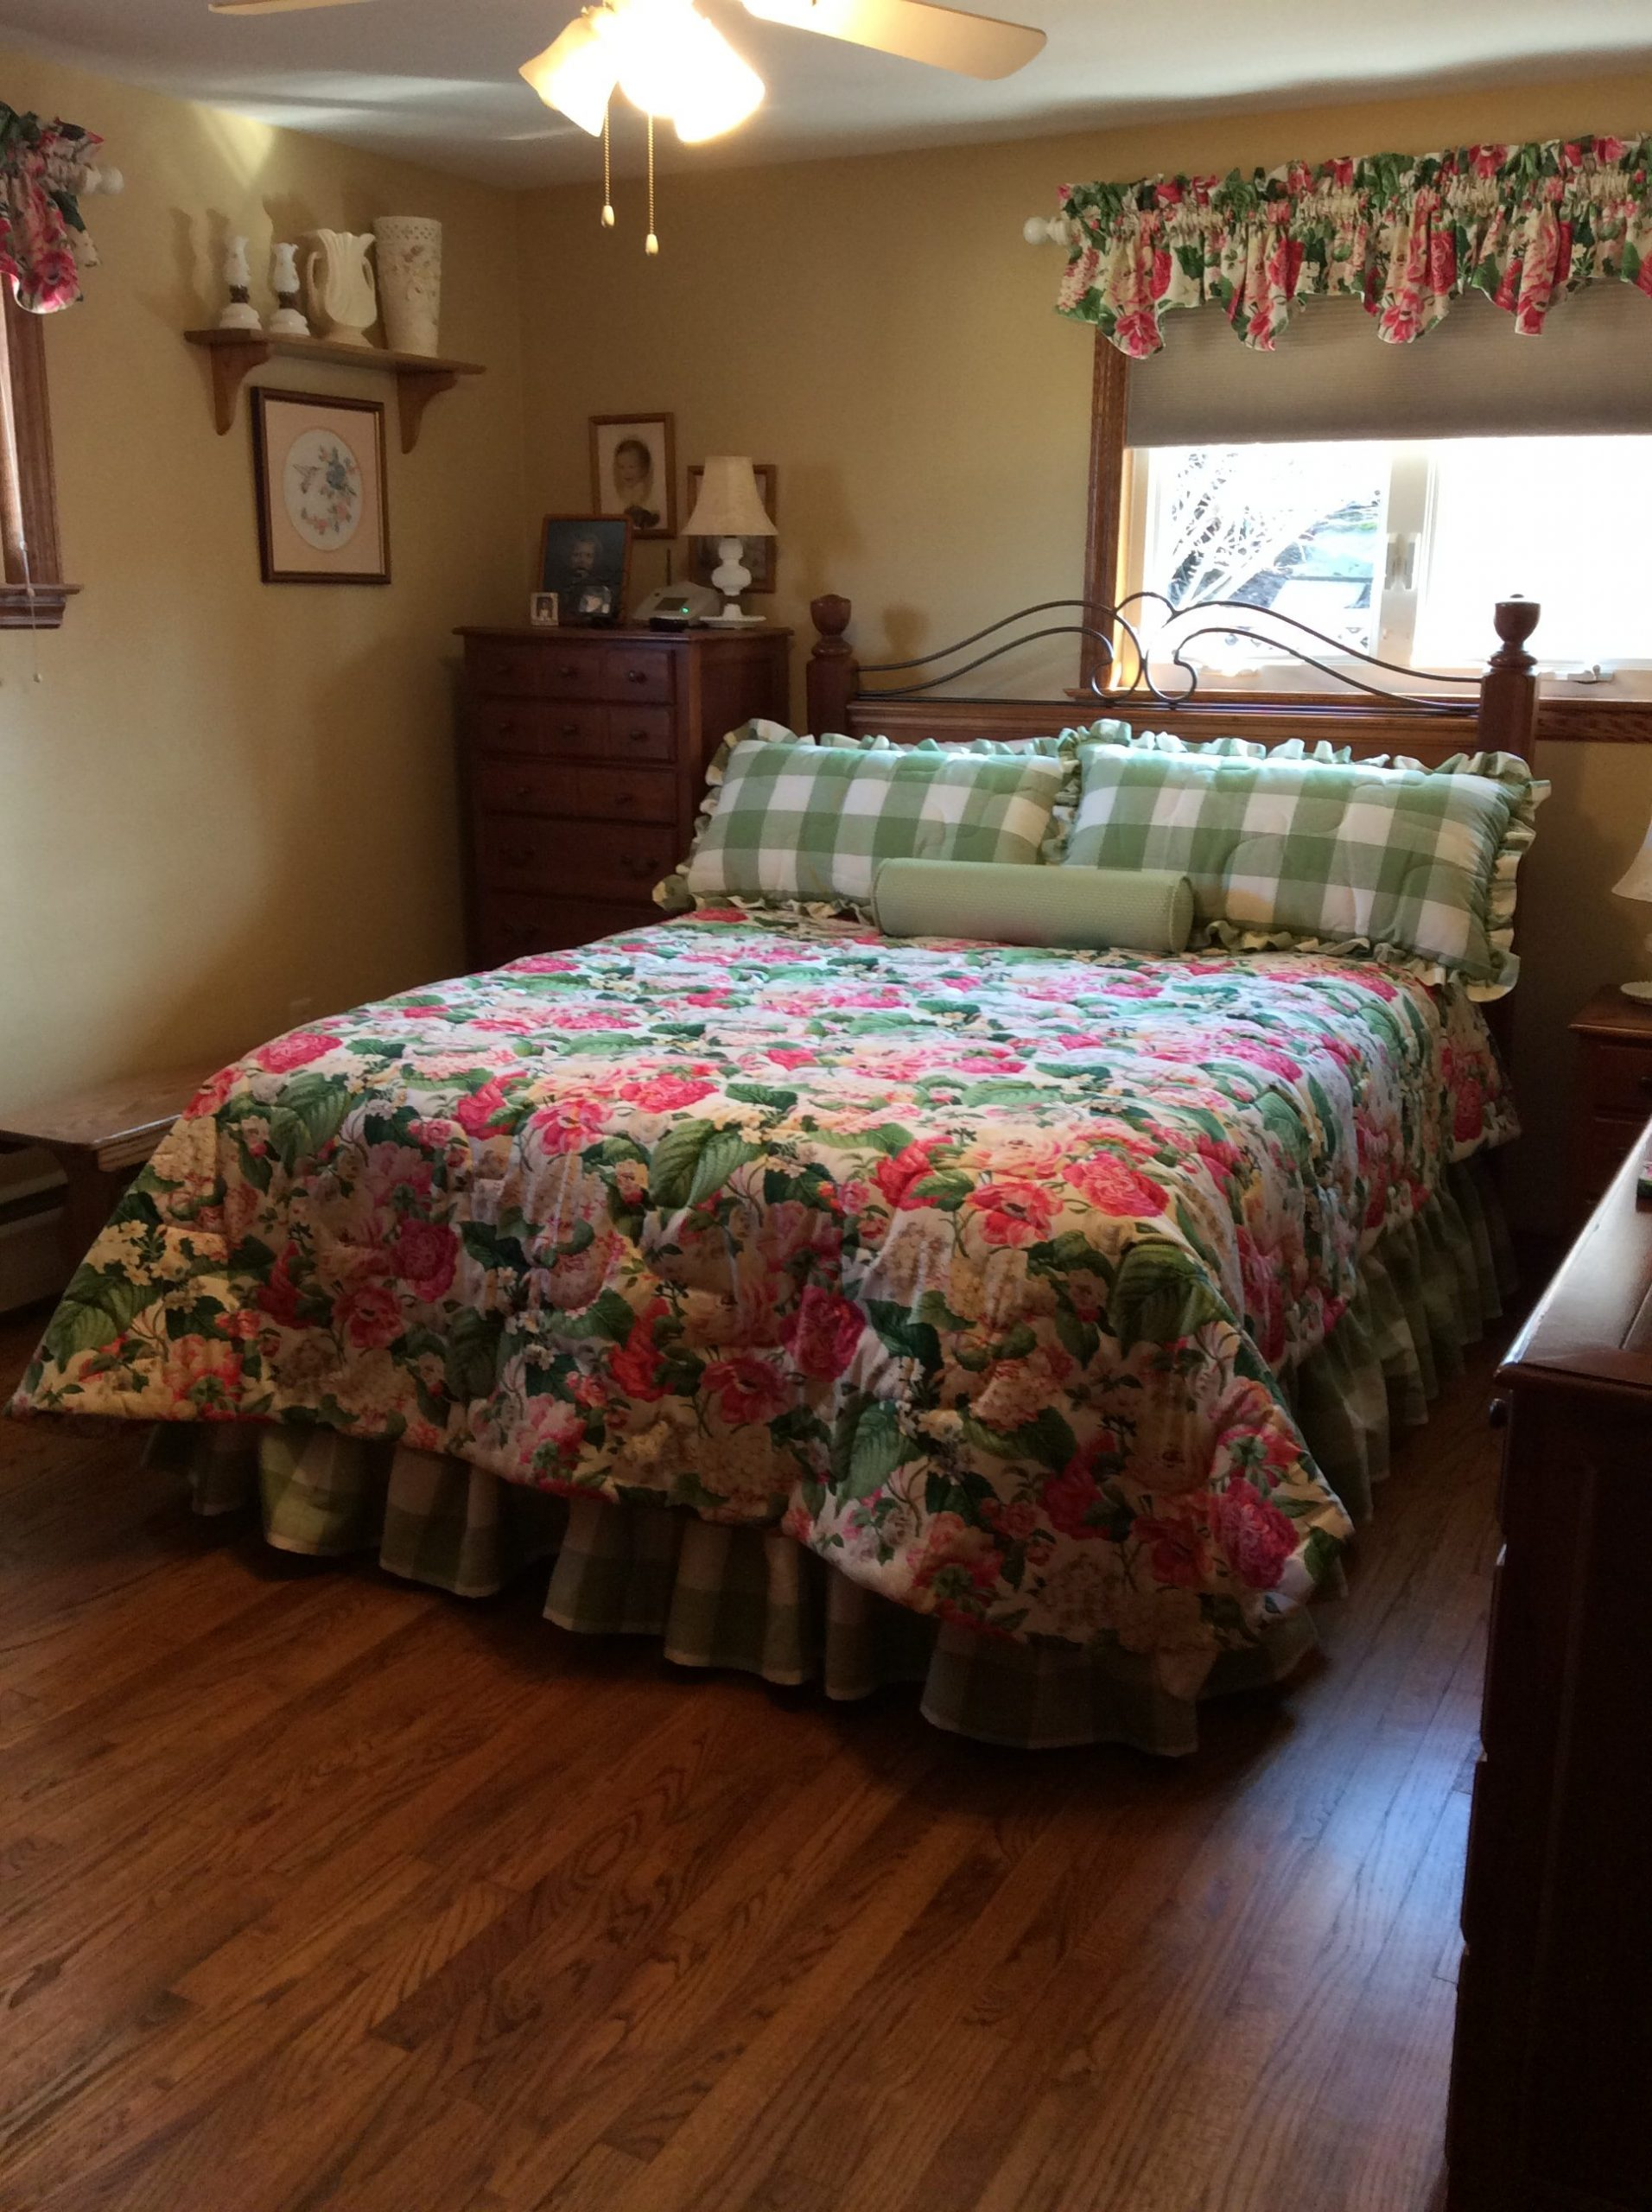 This is a recent custom bedding project that we just completed.